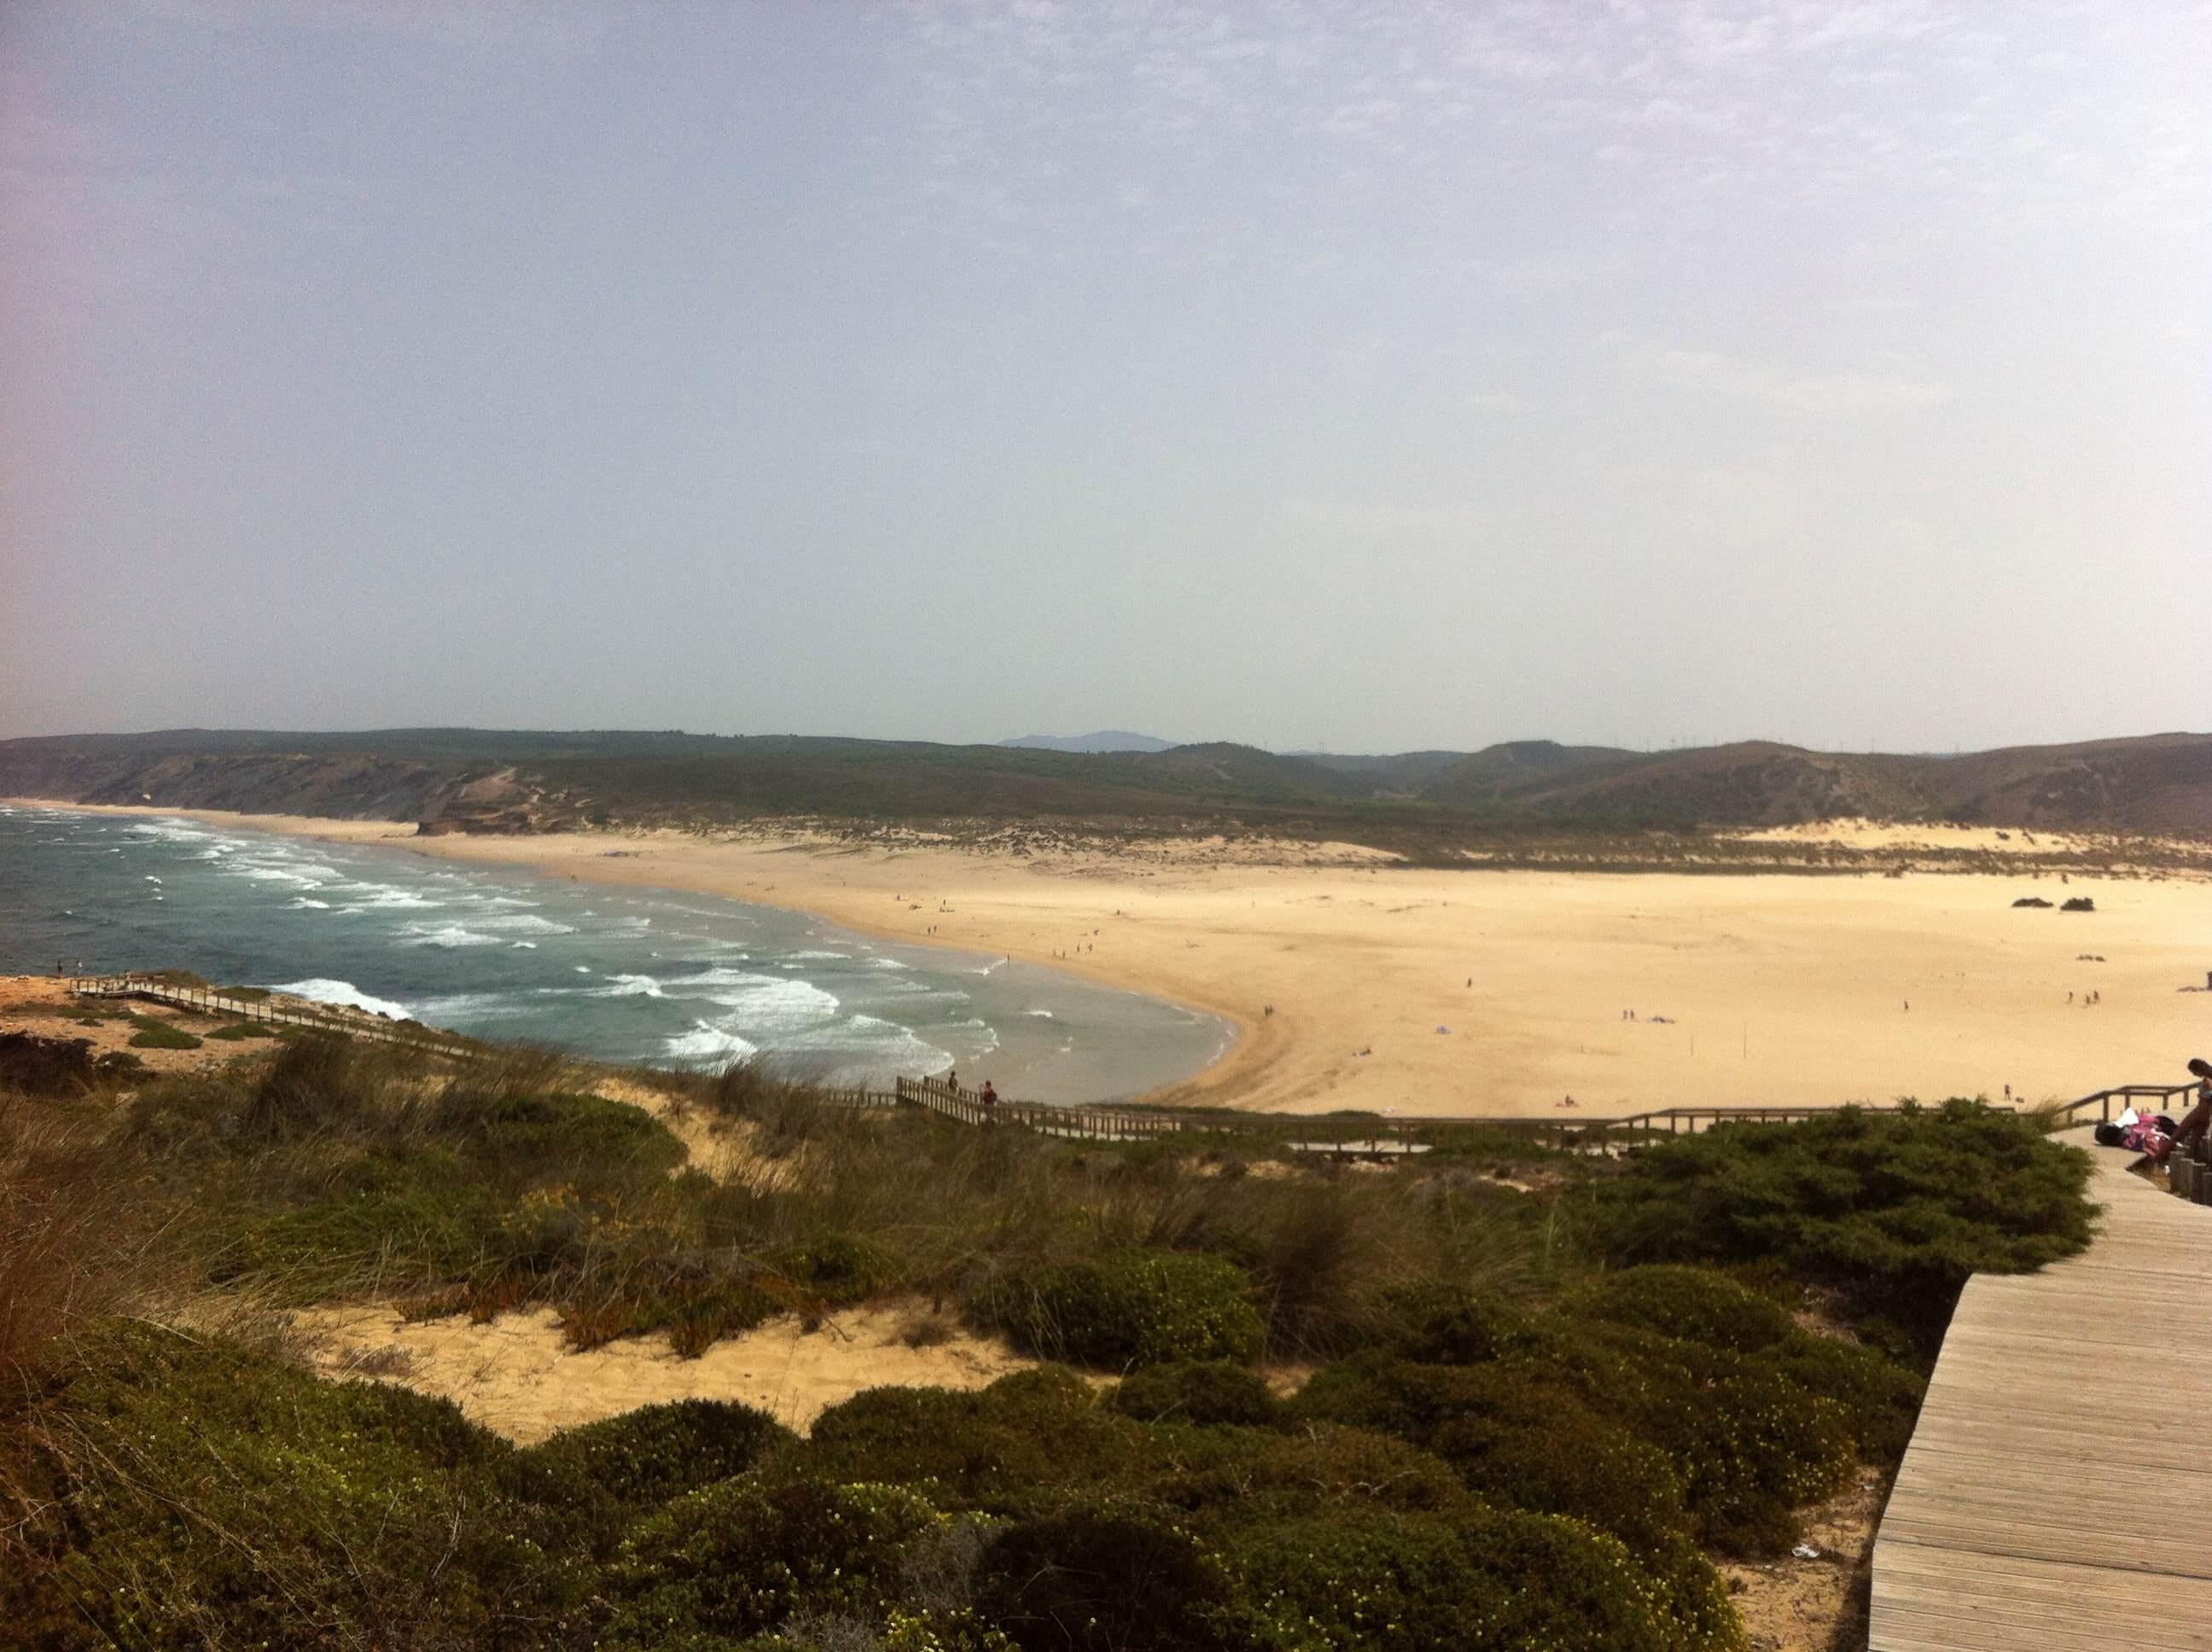 Cabo en Playa de Bordeira - Carrapateira